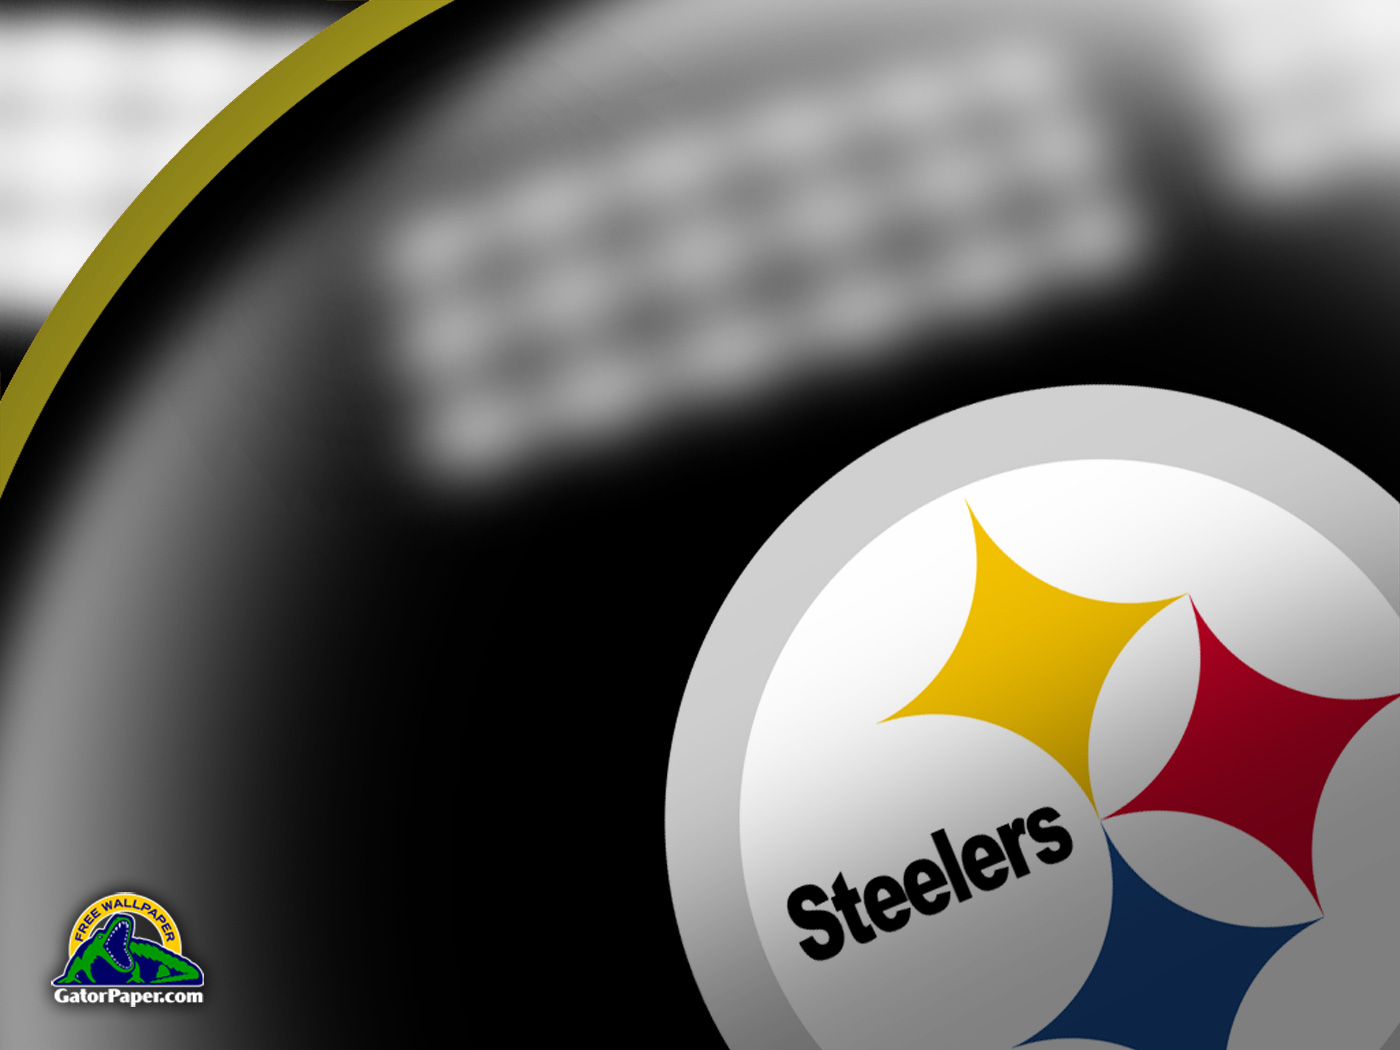 net pittsburgh steelers wallpaper pittsburgh steelers wallpaper hd 1400x1050